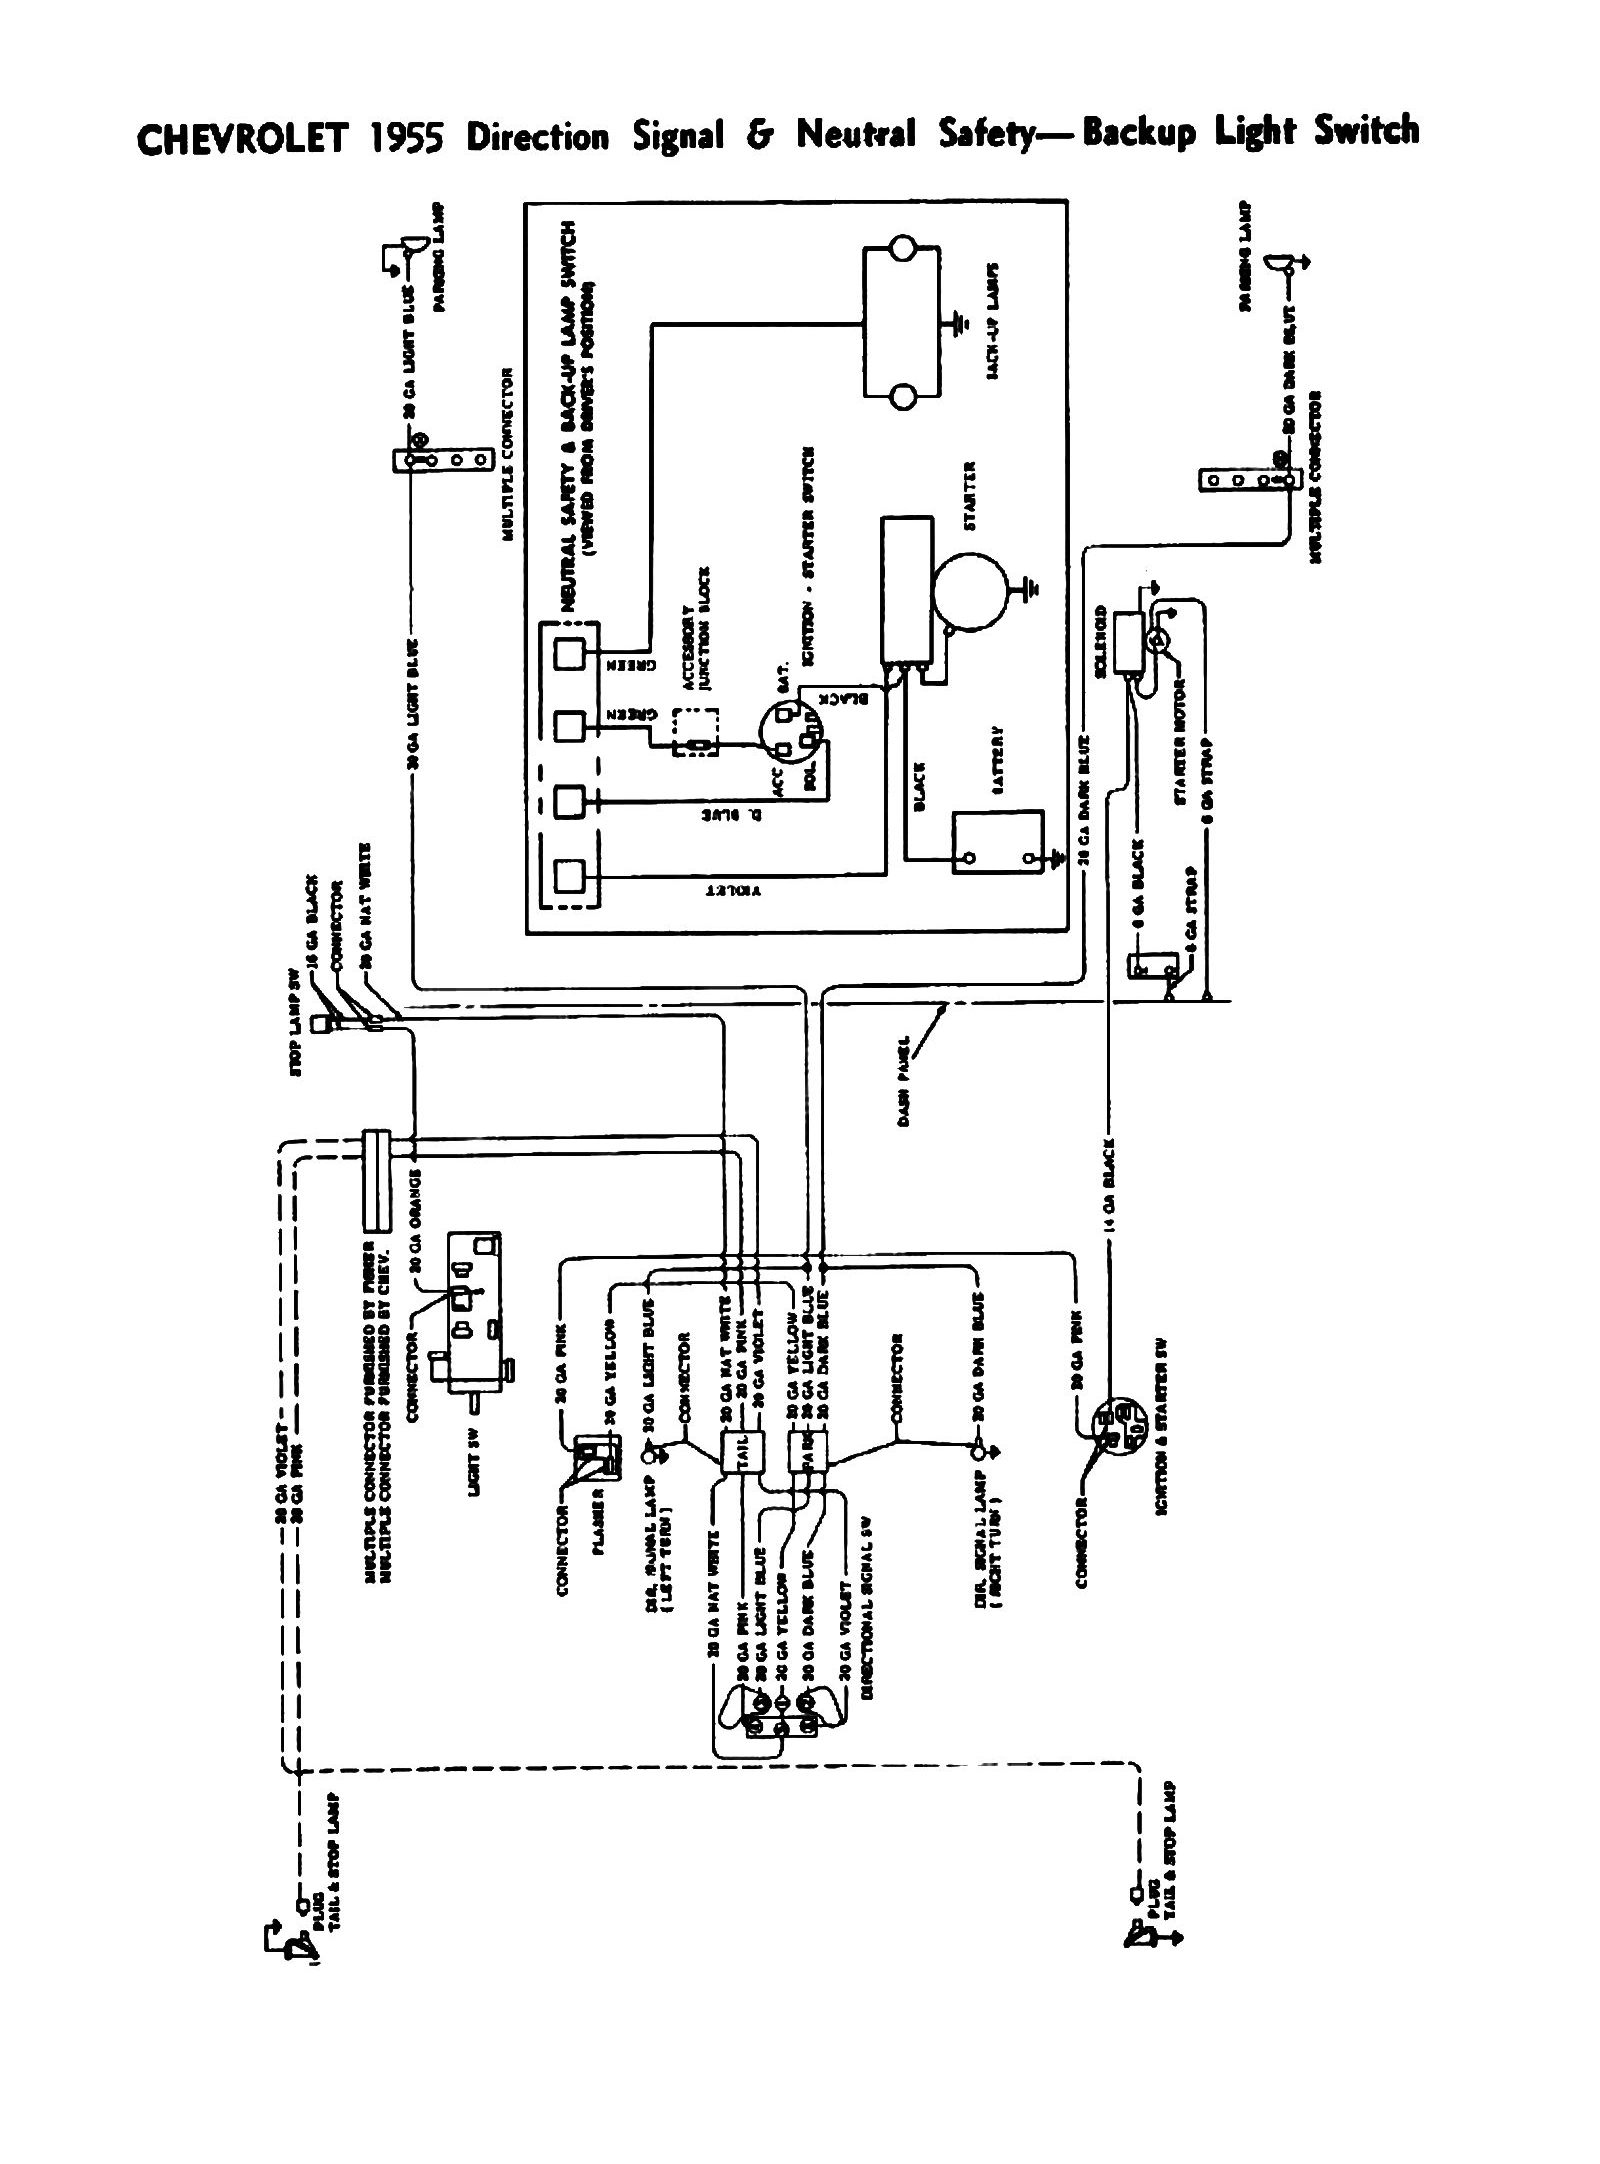 1950 Dodge Starter Wiring Diagram - Imr.entrepreneurs.nl • on dodge ram door switch diagram, dodge wiring harness diagram, 2002 dodge ram electrical diagram,